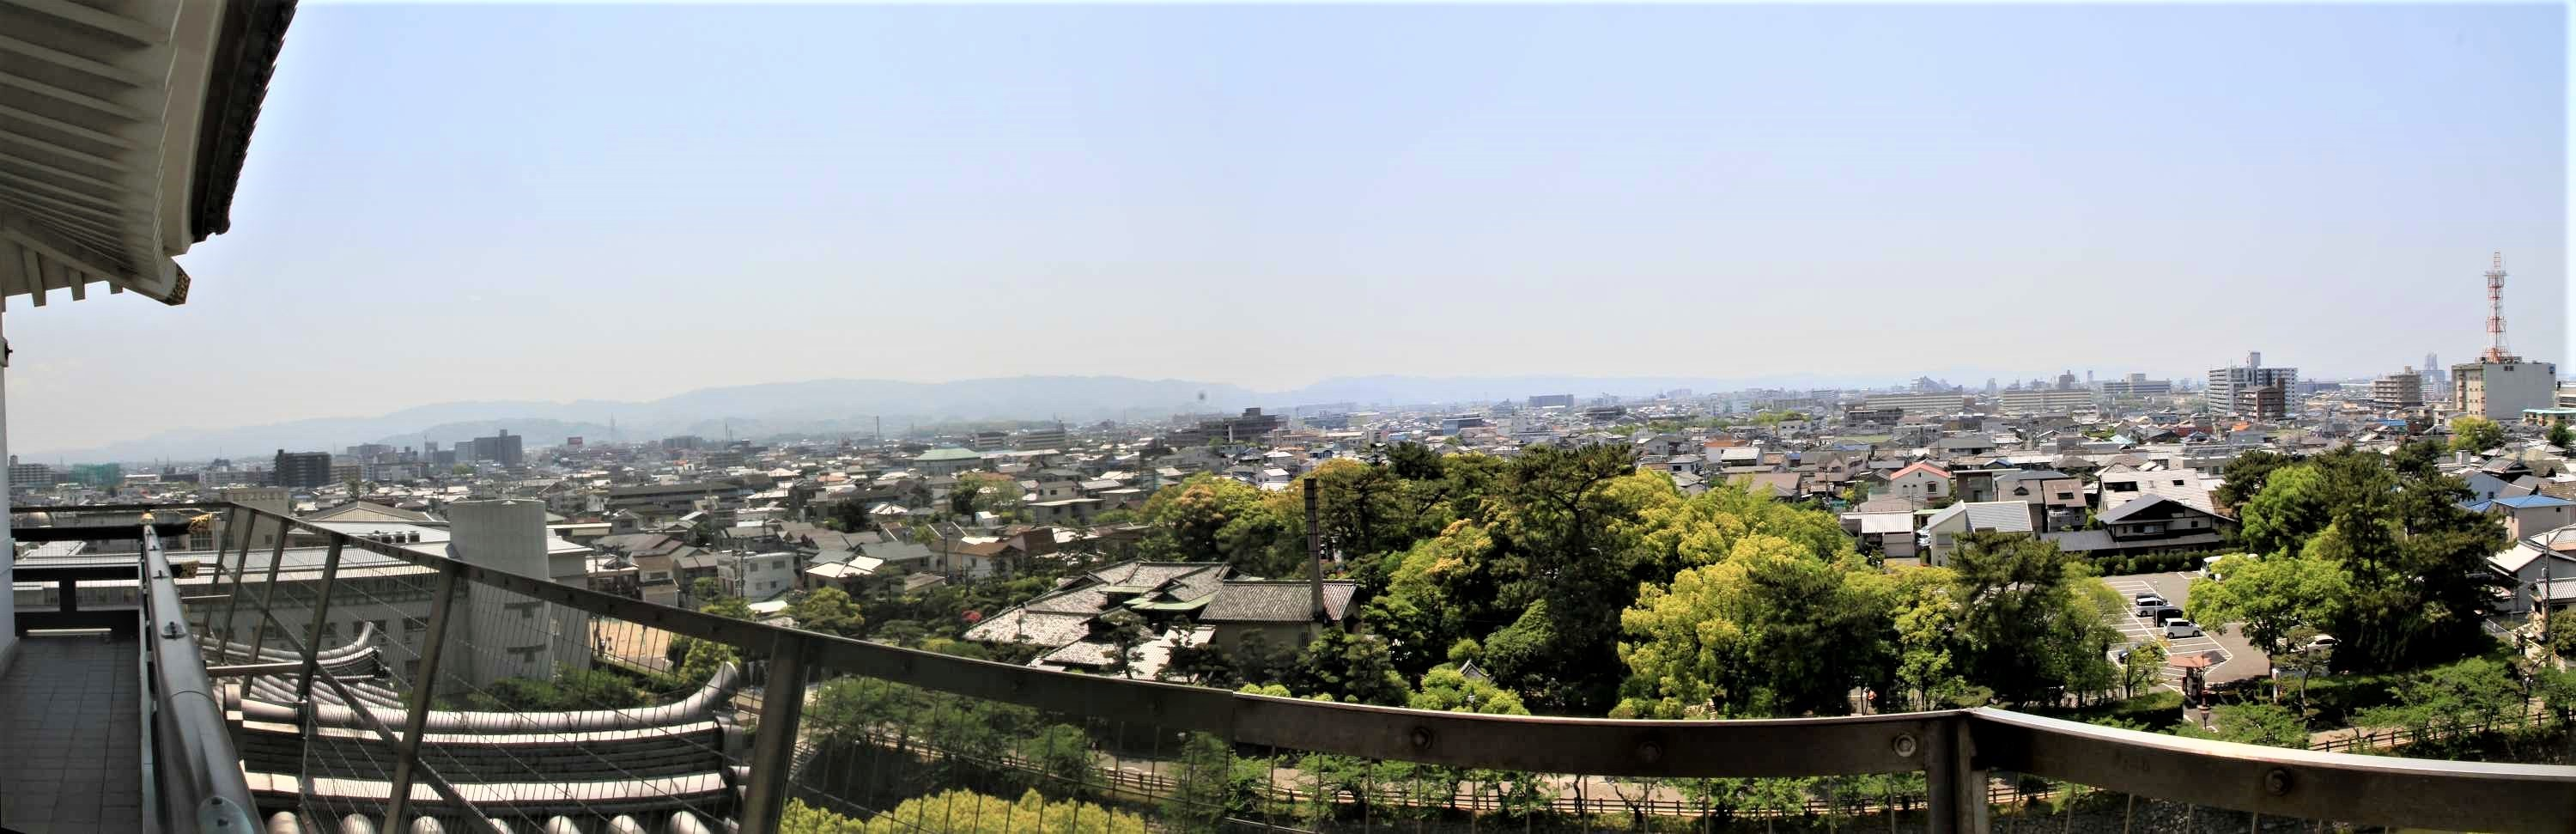 20130506IMG_6963 パノラマ写真